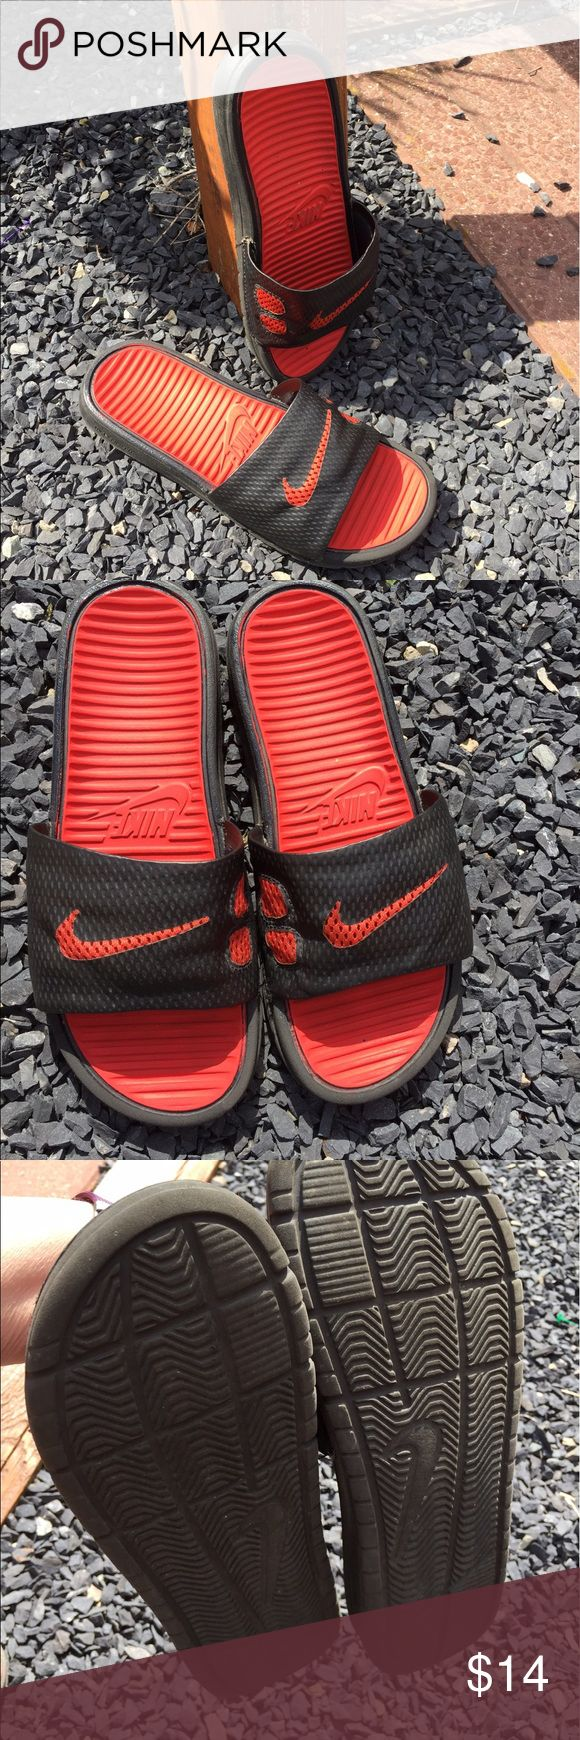 Nike Youth Boys Sandals Size 4 Size Youth 4. Gently preowned. Be sure to view the other items in our closet. We offer  women's, Mens and kids items in a variety of sizes. Bundle and save!! Thank you for viewing our item!! Nike Shoes Sandals & Flip Flops